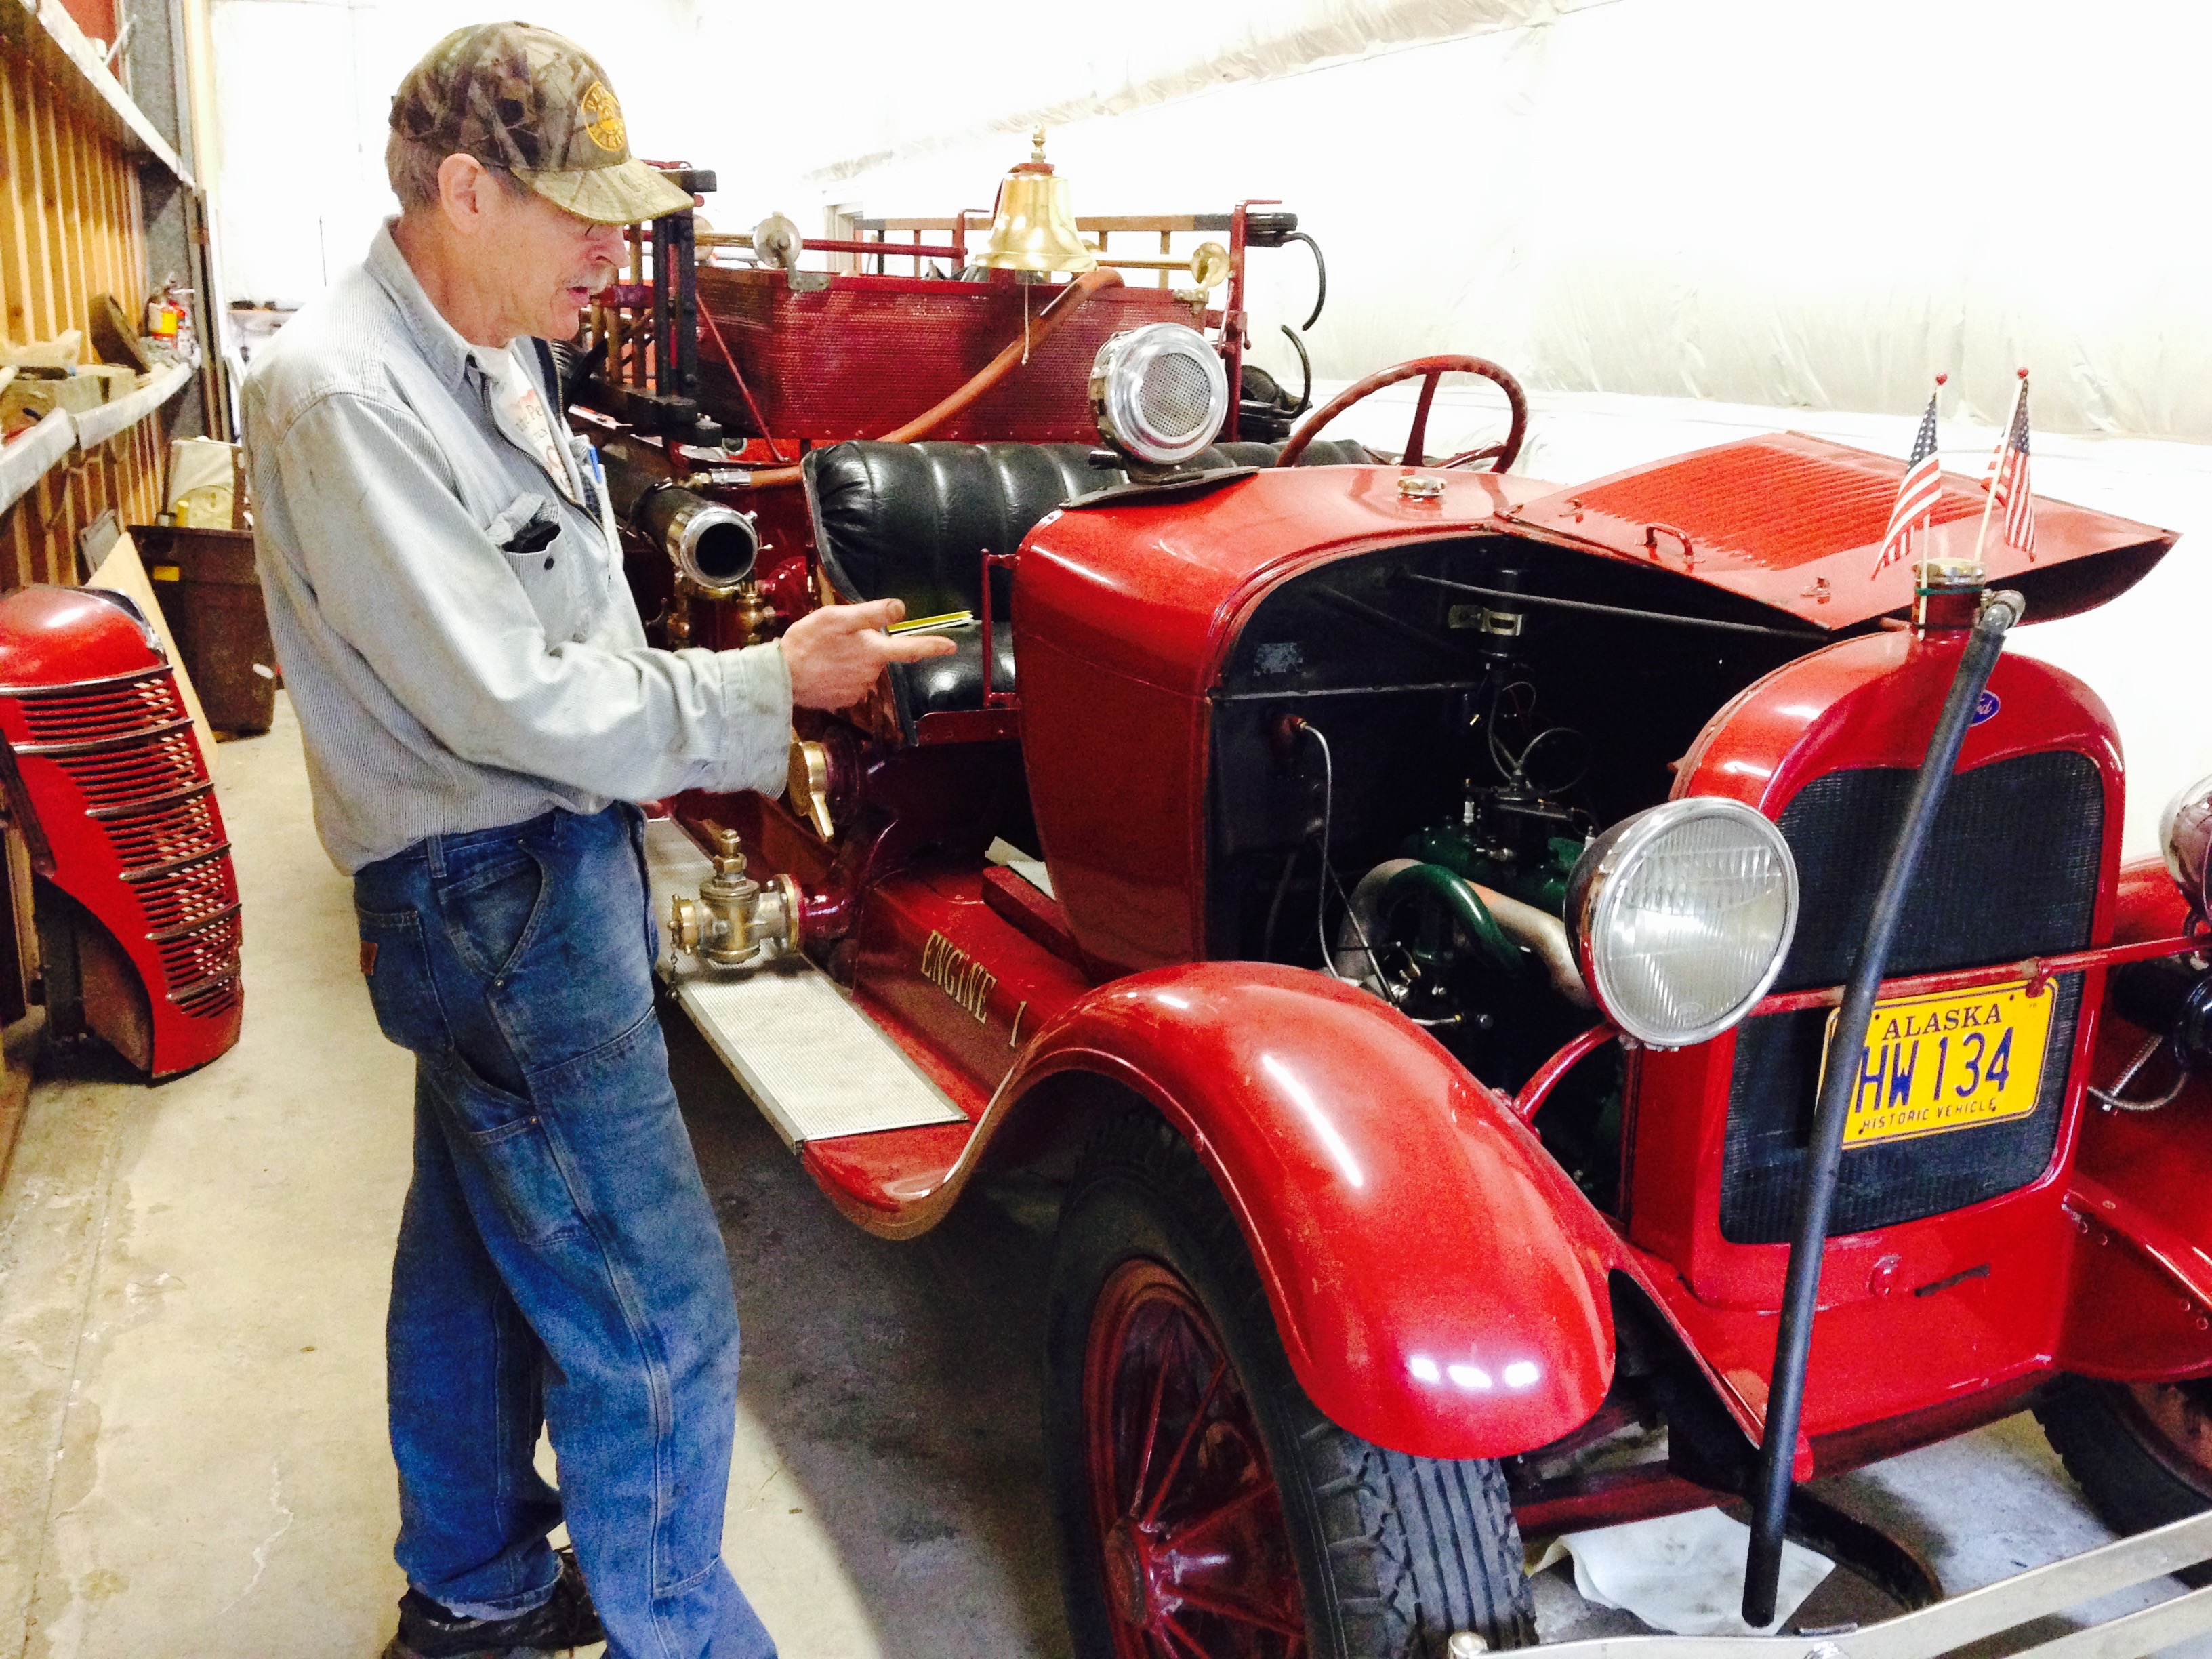 Jack Slaght points to the engine he overhauled in the 1928 Model A fire truck. (Photo by Angela Denning, KFSK - Petersburg)